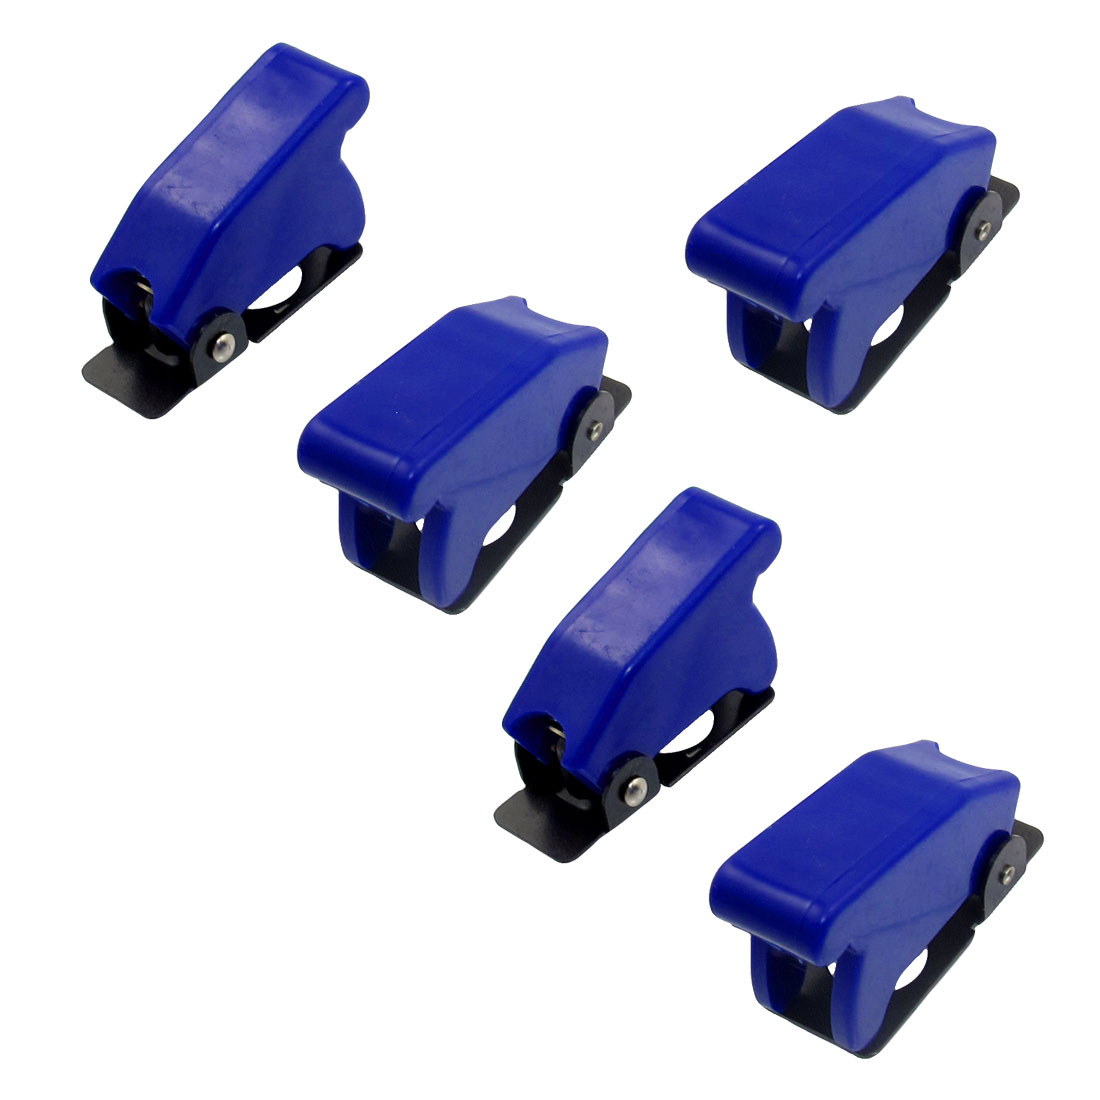 5 Pcs 12mm Mount Dia. Blue Safety Flip Cover for Toggle Switch